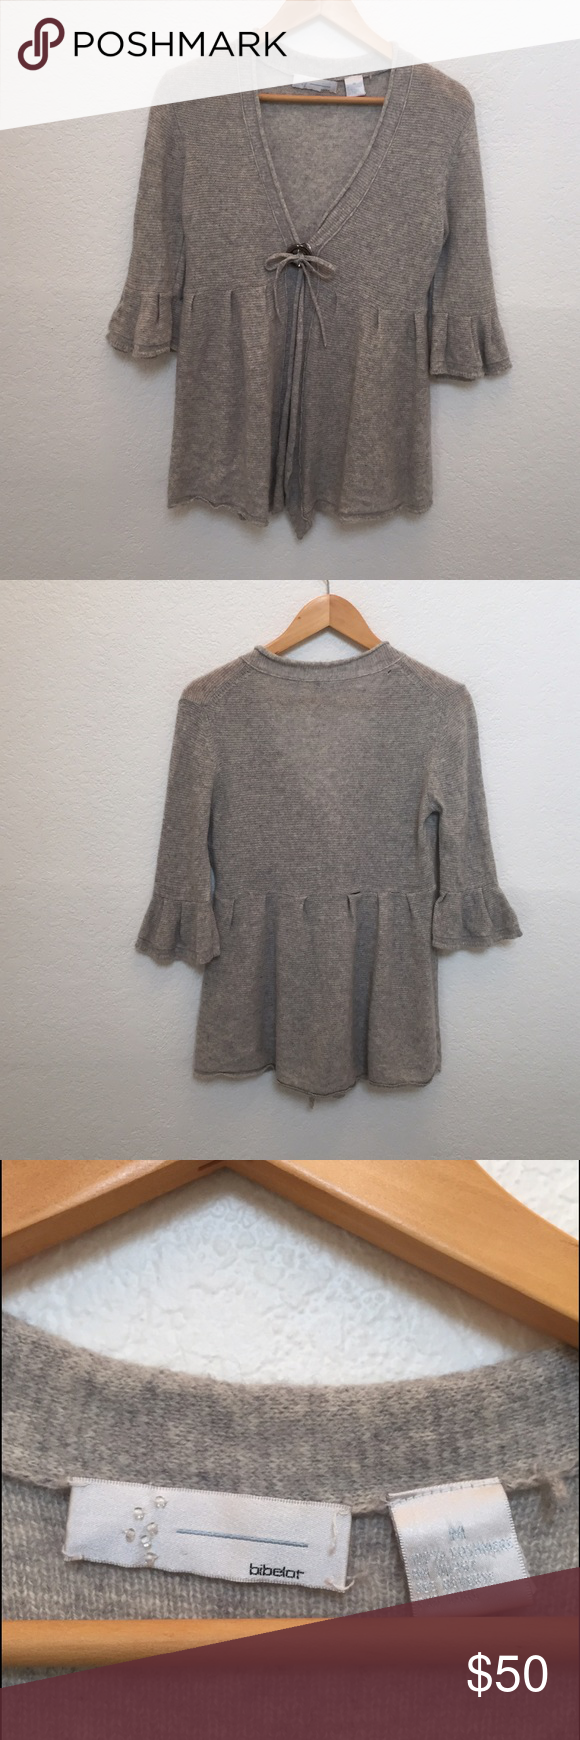 Bibelot cashmere sweater Beautiful cashmere cardigan bibelot ...